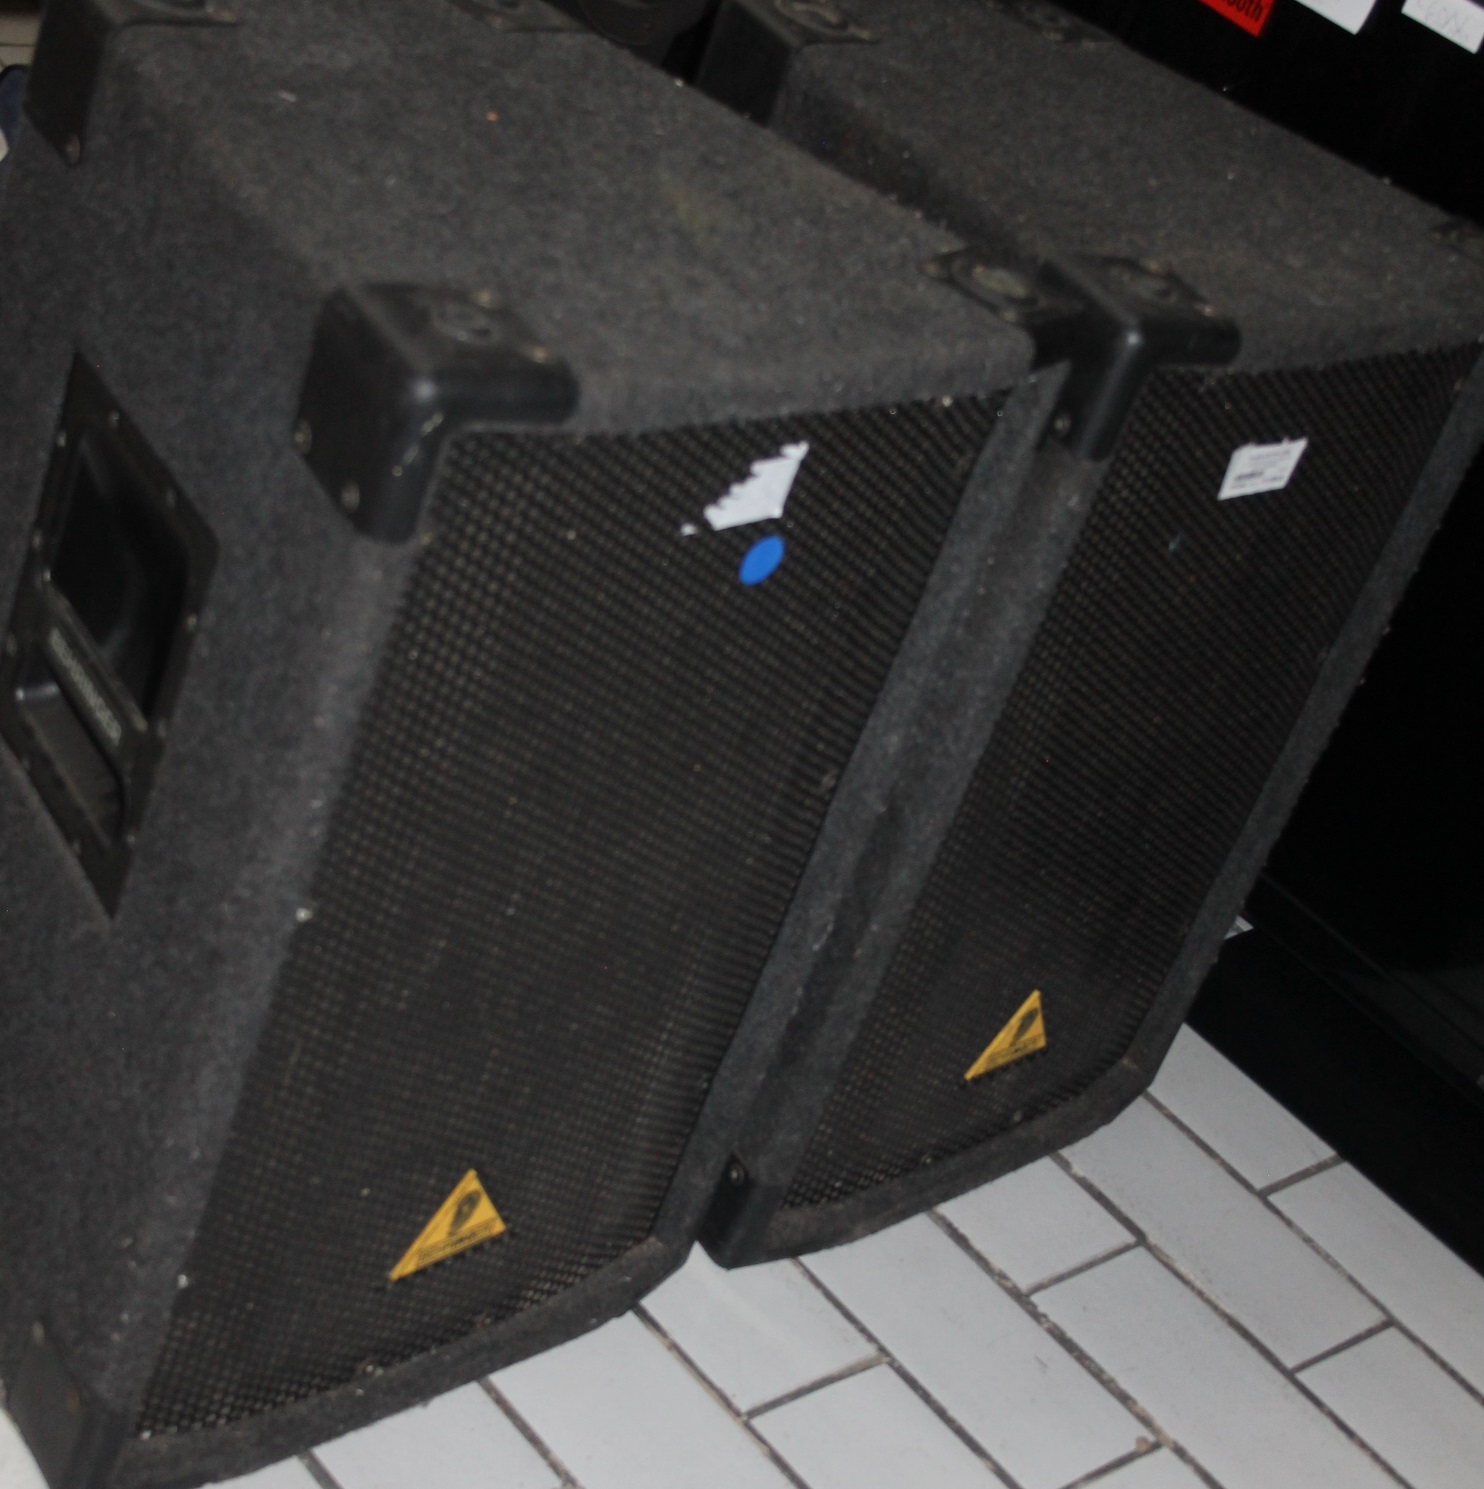 S034254A 2 X Behringer b1220 2 way pa loud speakers #Rosettenvillepawnshop